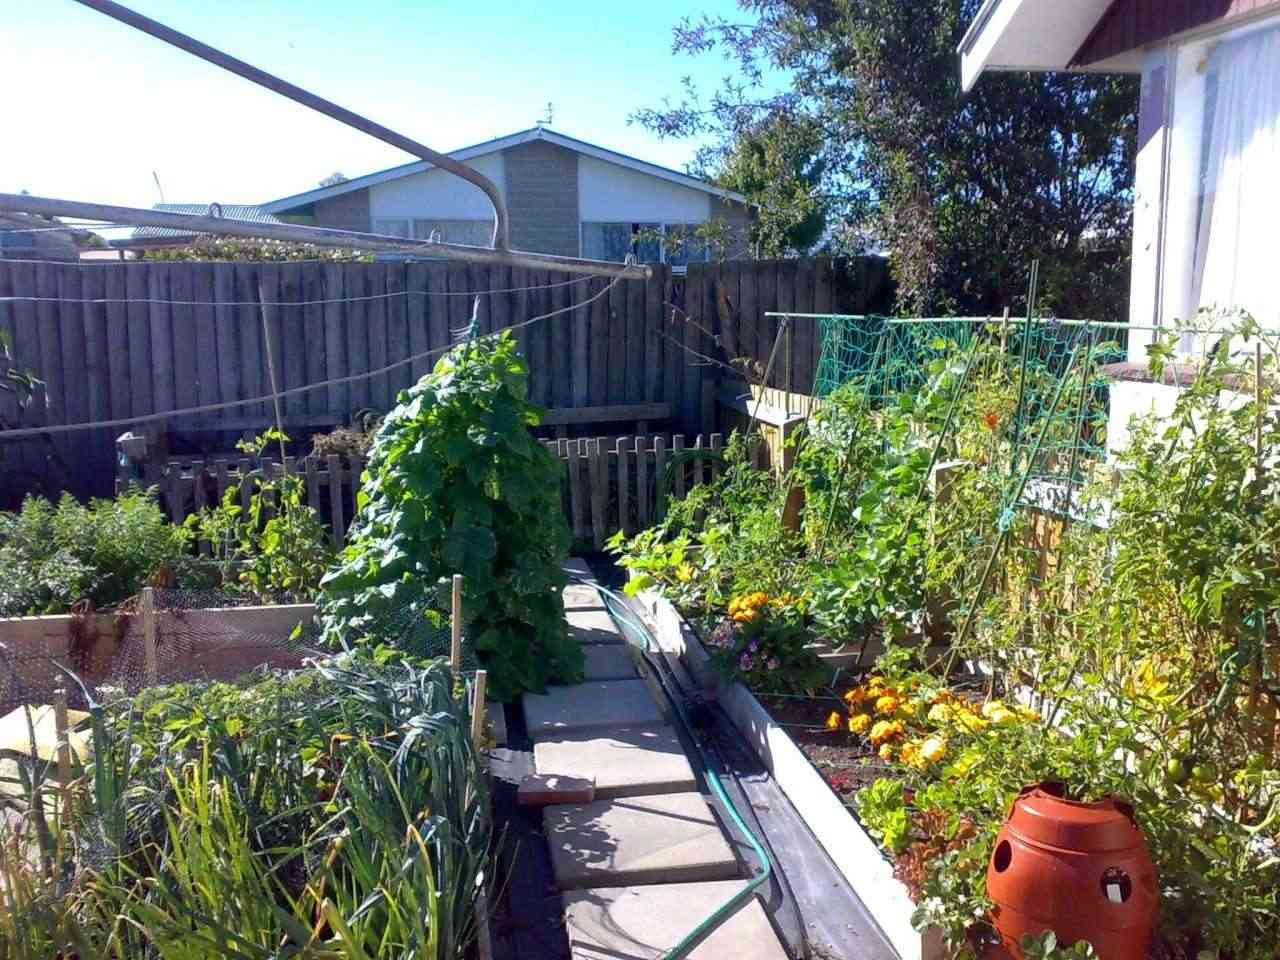 A New Zealand square foot garden 27022010